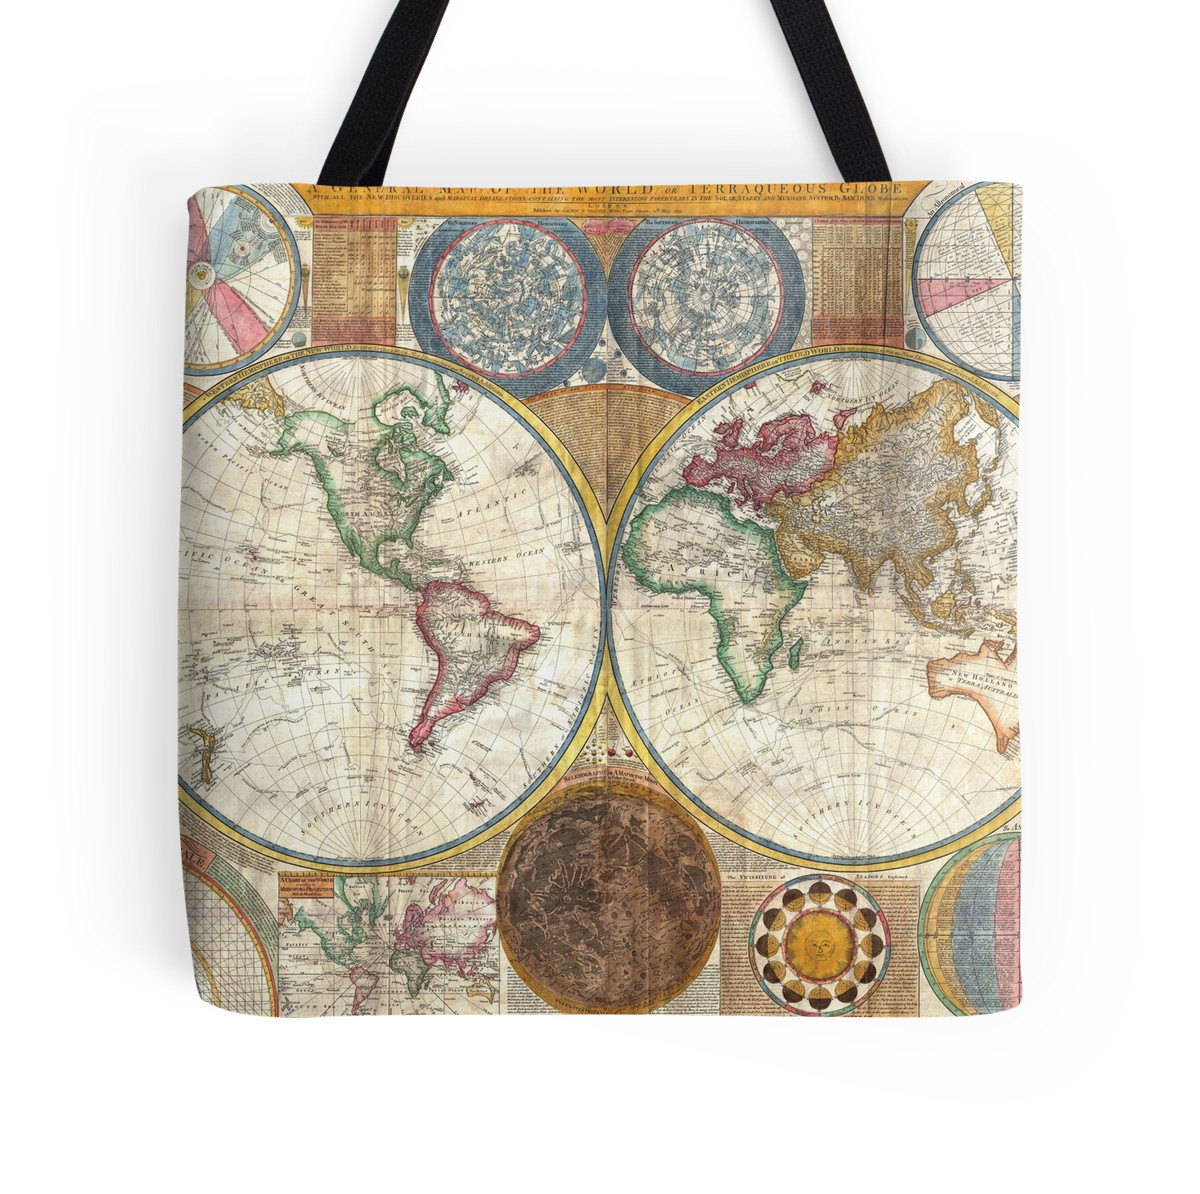 Ancient Vintage World Map Tote Bag. Canvas Tote Bag. Fabric Market ...